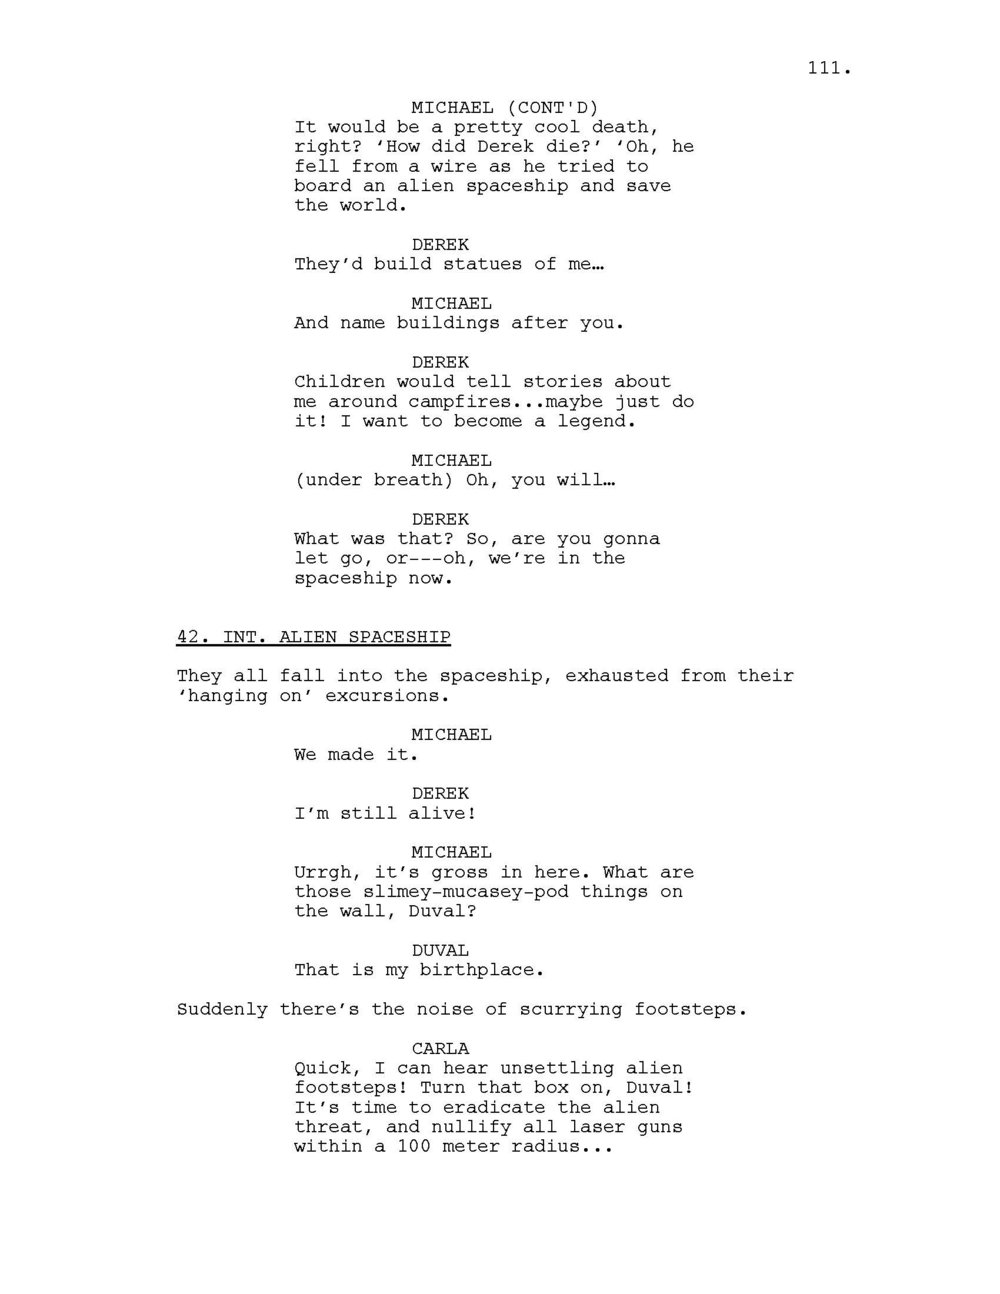 INVISIBLE WORLD SCRIPT_Page_112.jpg